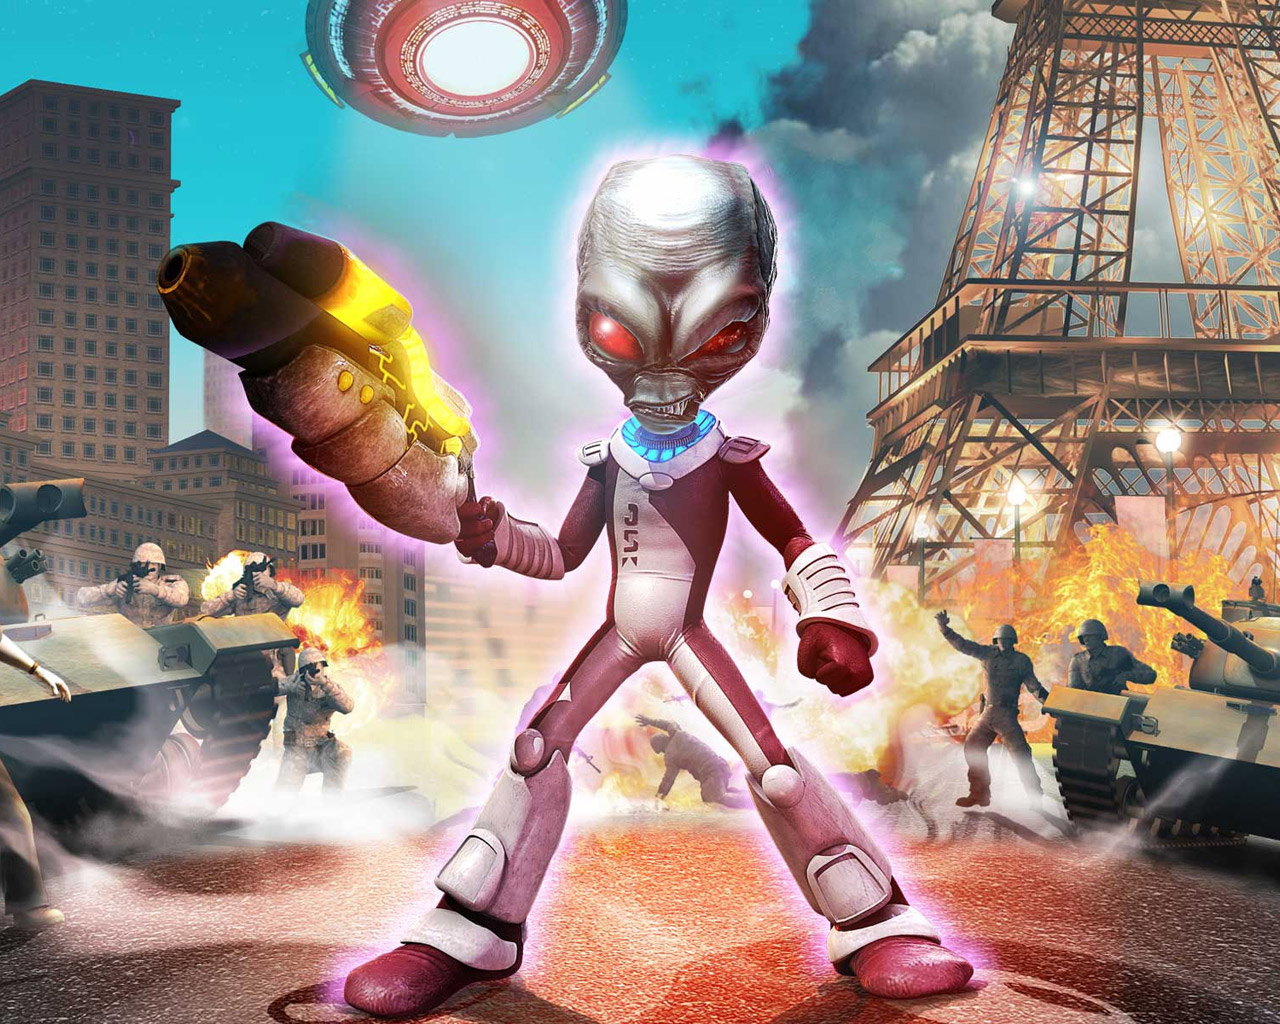 Destroy All Humans! Path of the Furon Wallpaper in 1280x1024